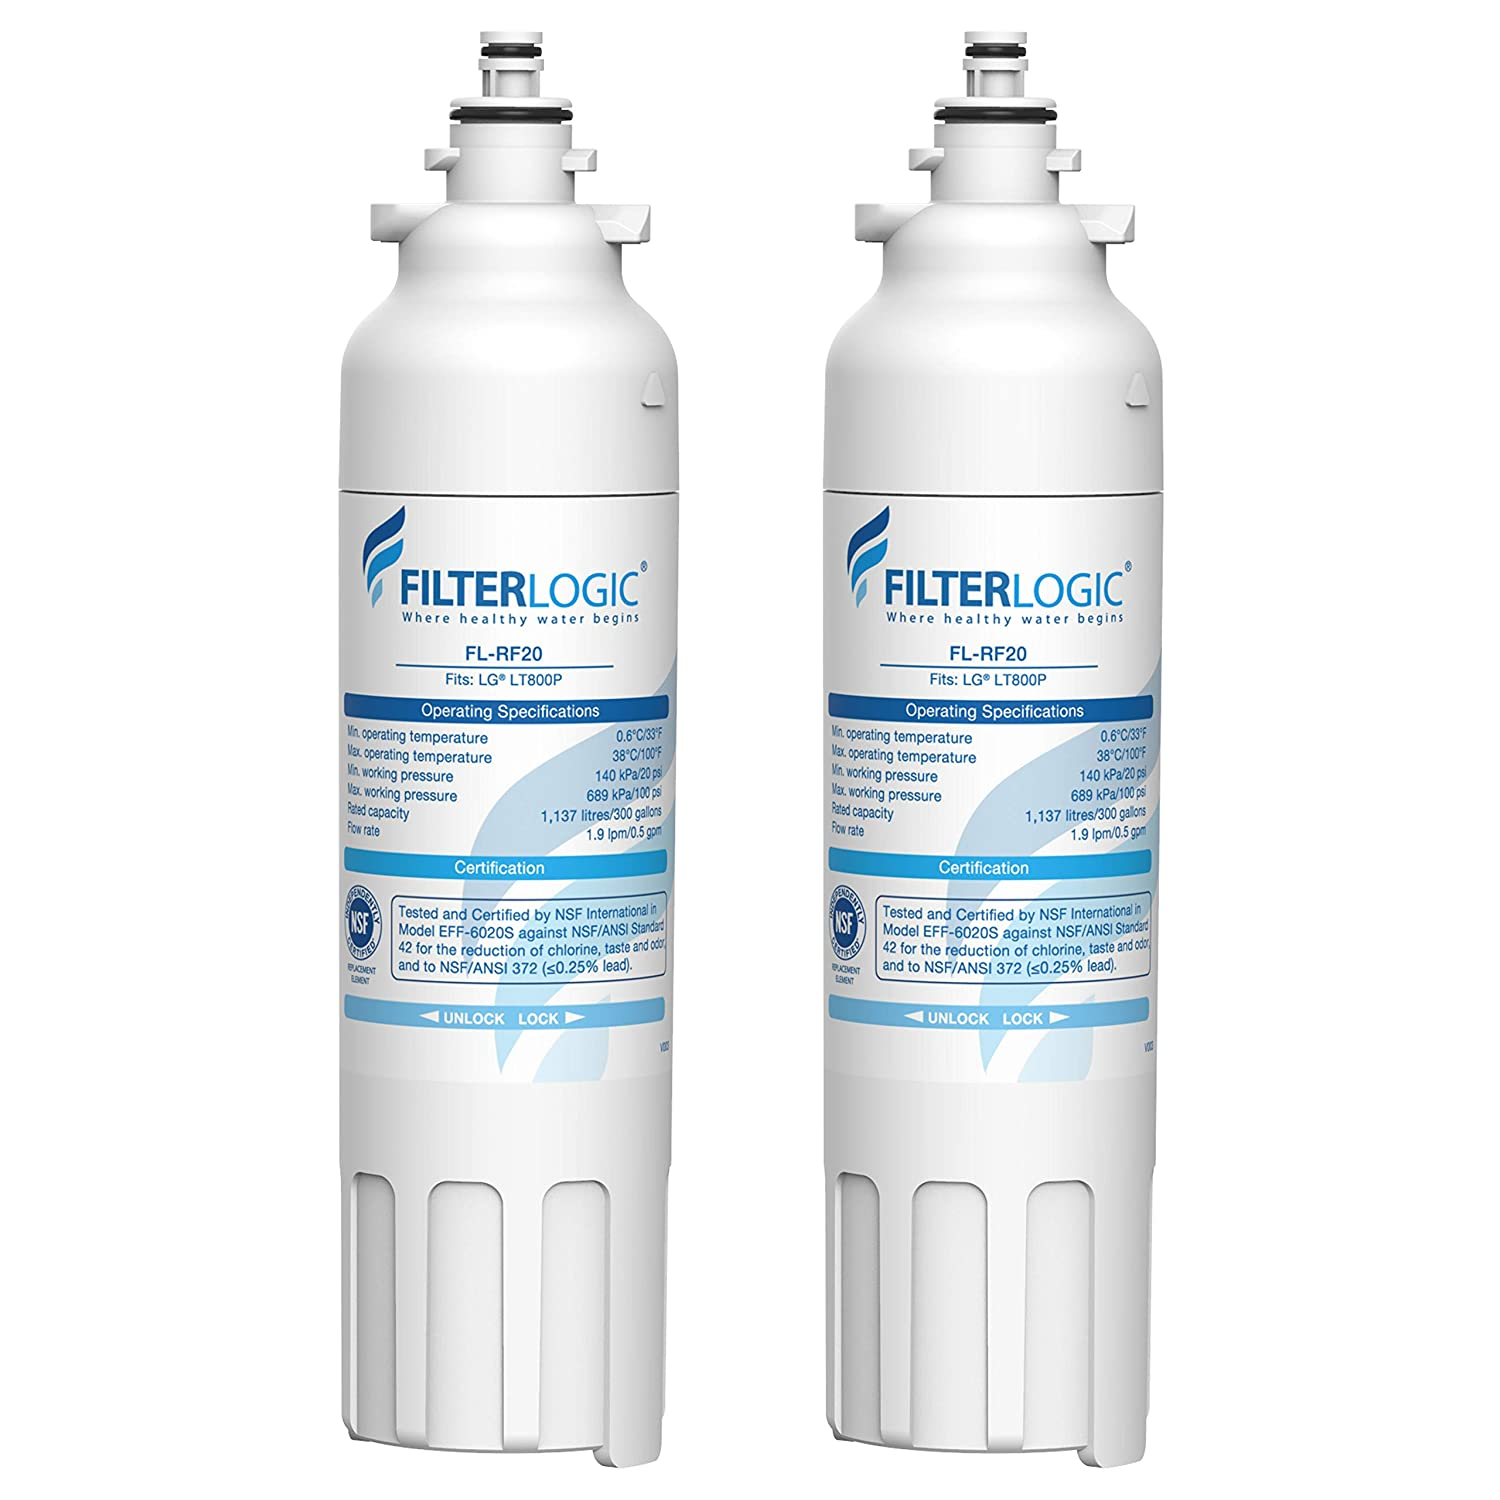 FilterLogic ADQ73613401 Refrigerator Water Filter, Replacement for LG LT800P, Kenmore 9490, LSXS26326S, LMXC23746S, WF-LT800P, 469490, LMXC23746D, ADQ73613402, 46-9490, LSXS26366S (Pack of 2)